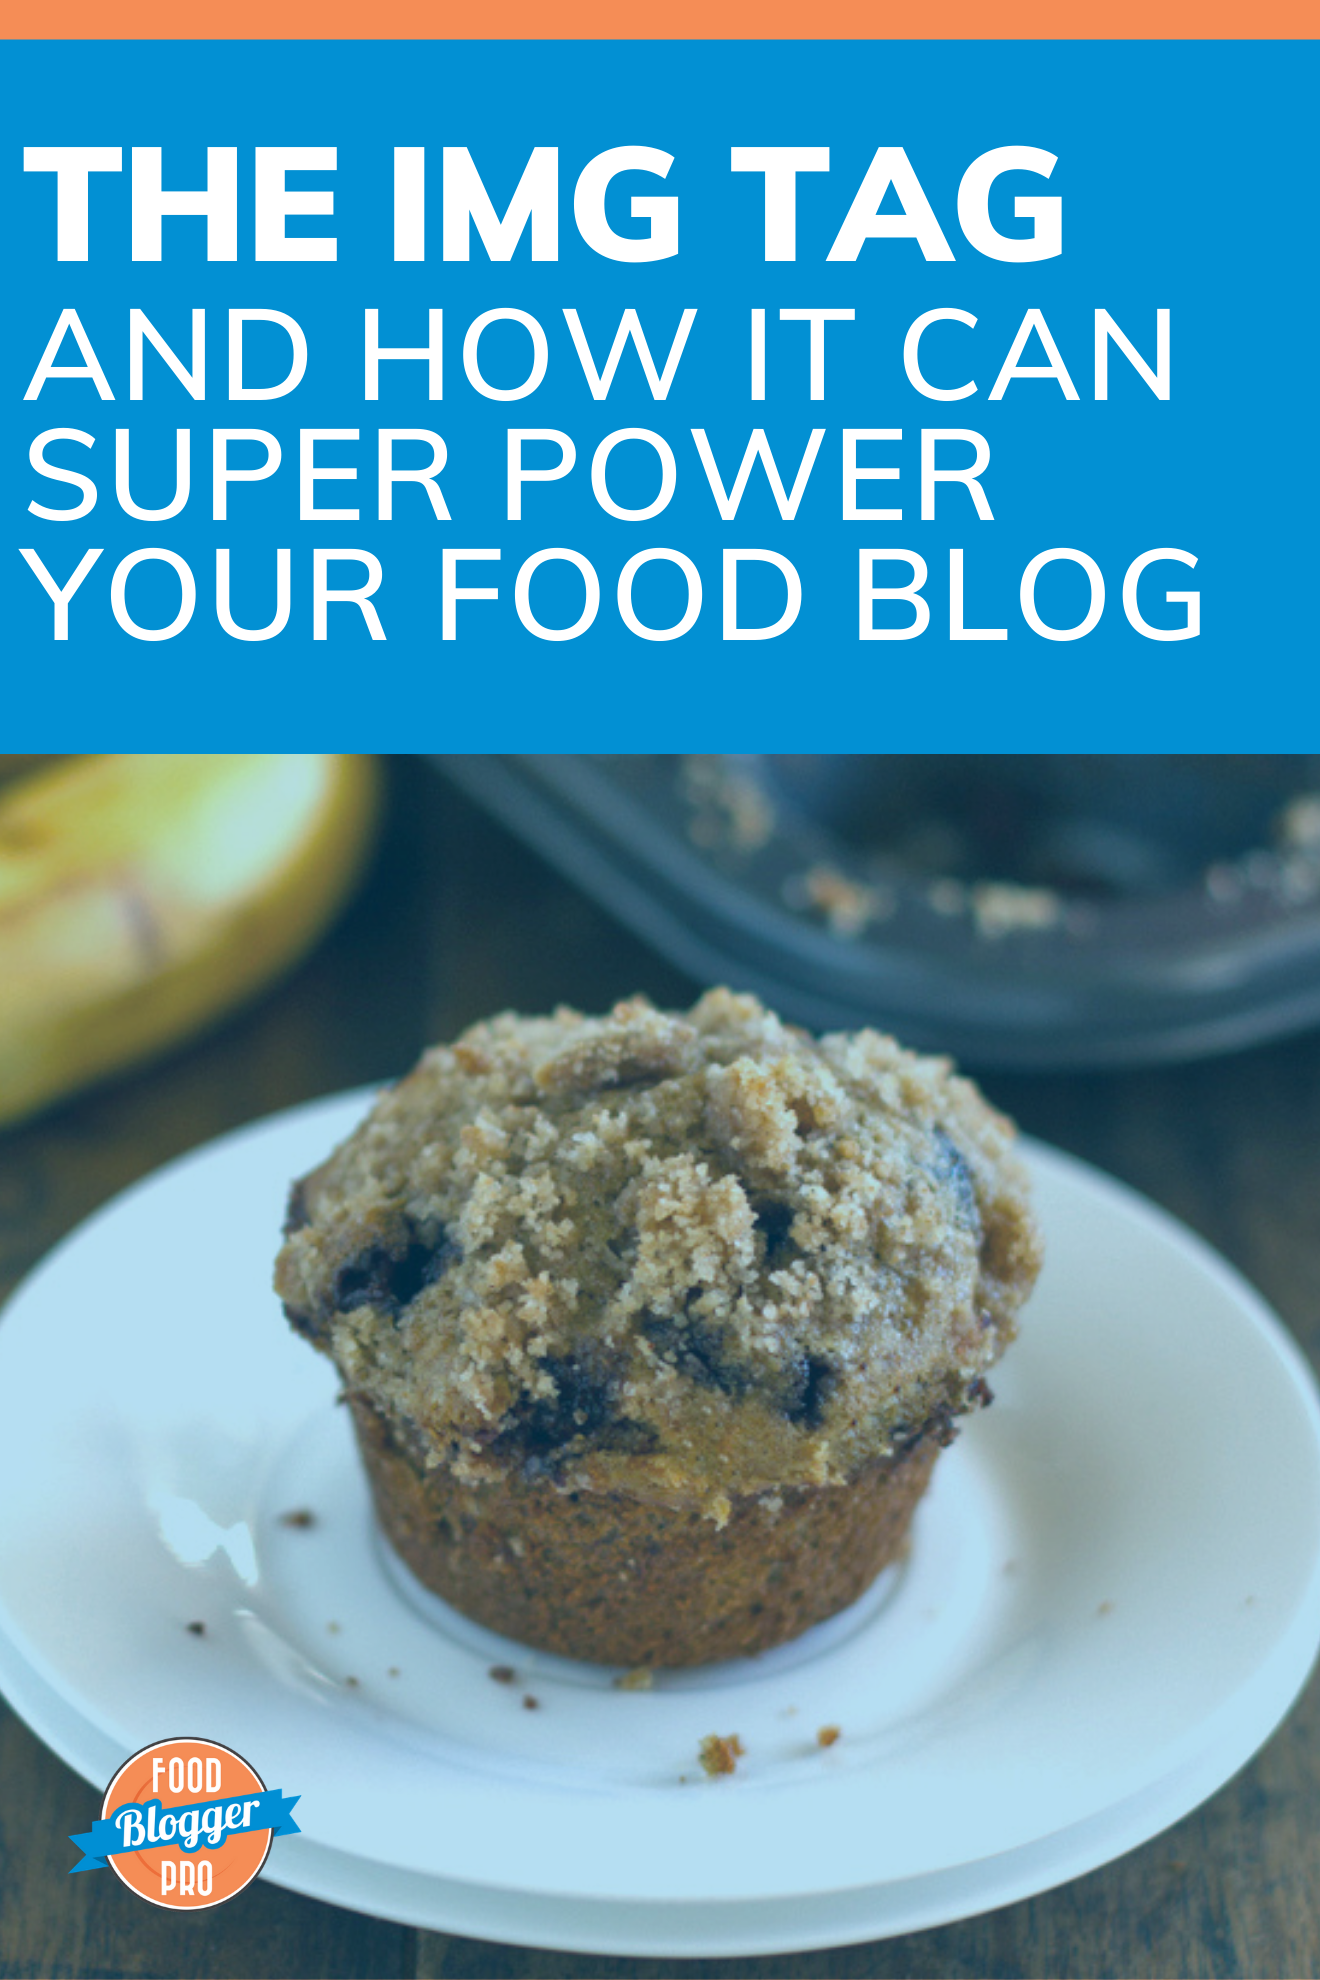 a muffin on a plate and the title of this blog article ' The Img Tag and how It Can Super Power Your Food Blog'